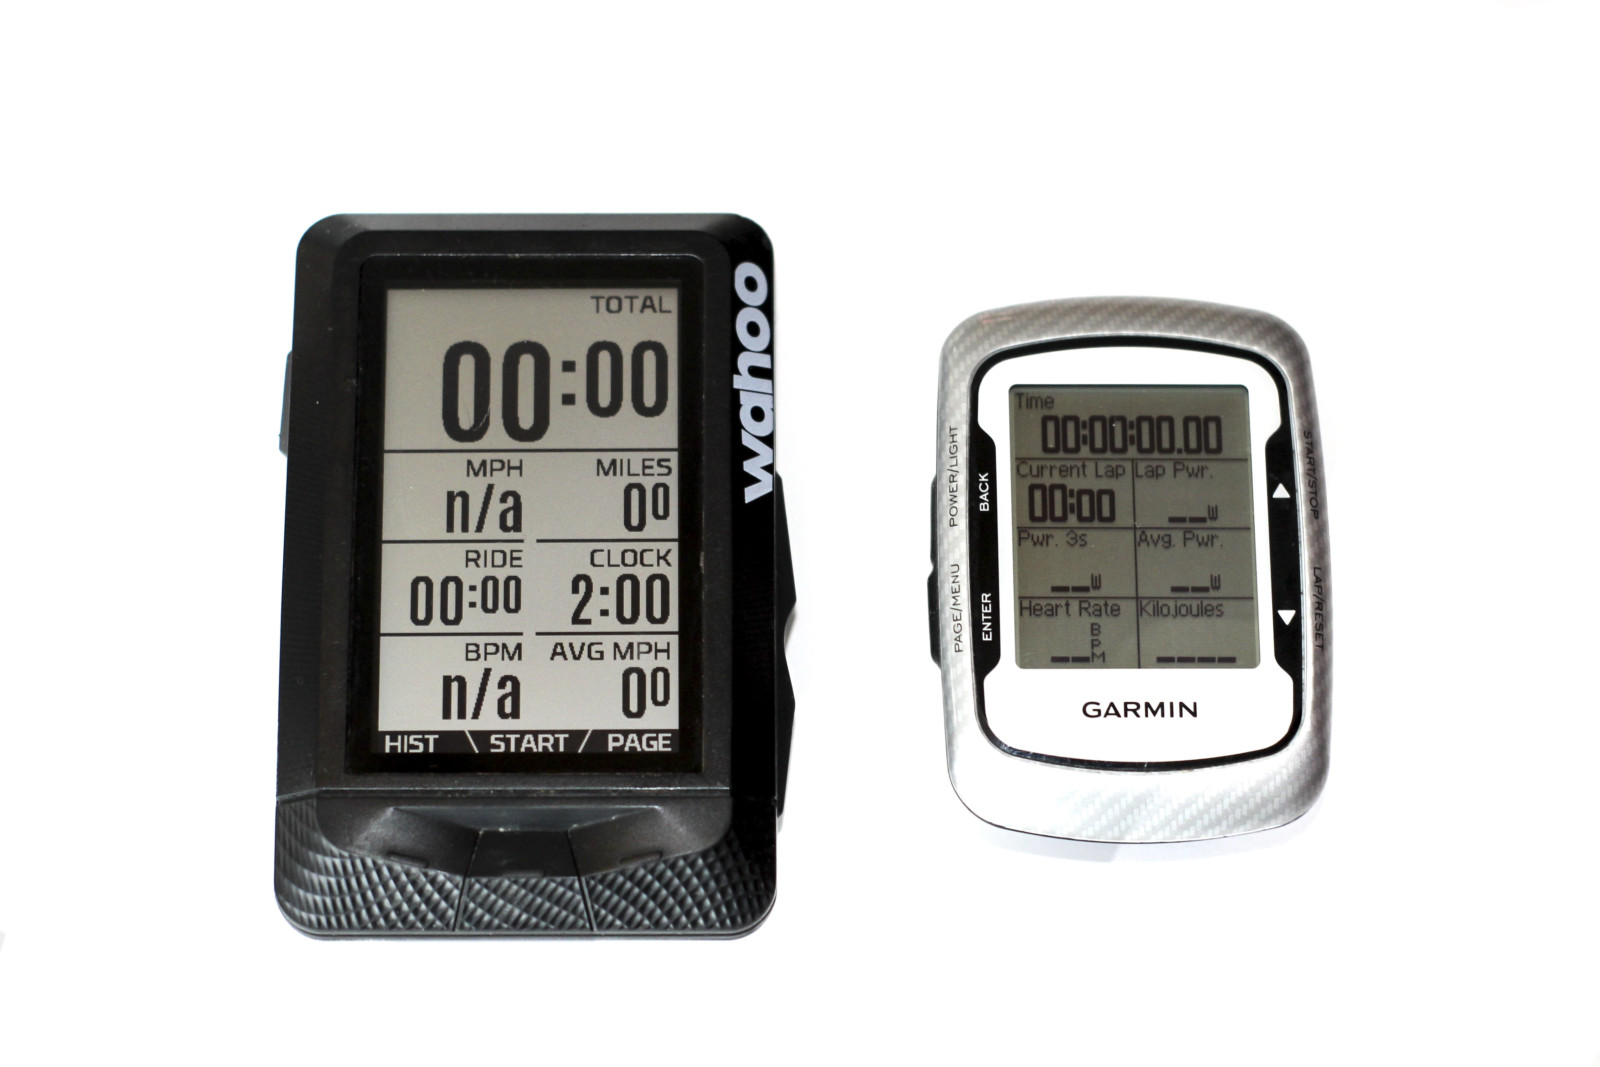 Review: Stay on Your Gravel Route with the Wahoo Elemnt GPS